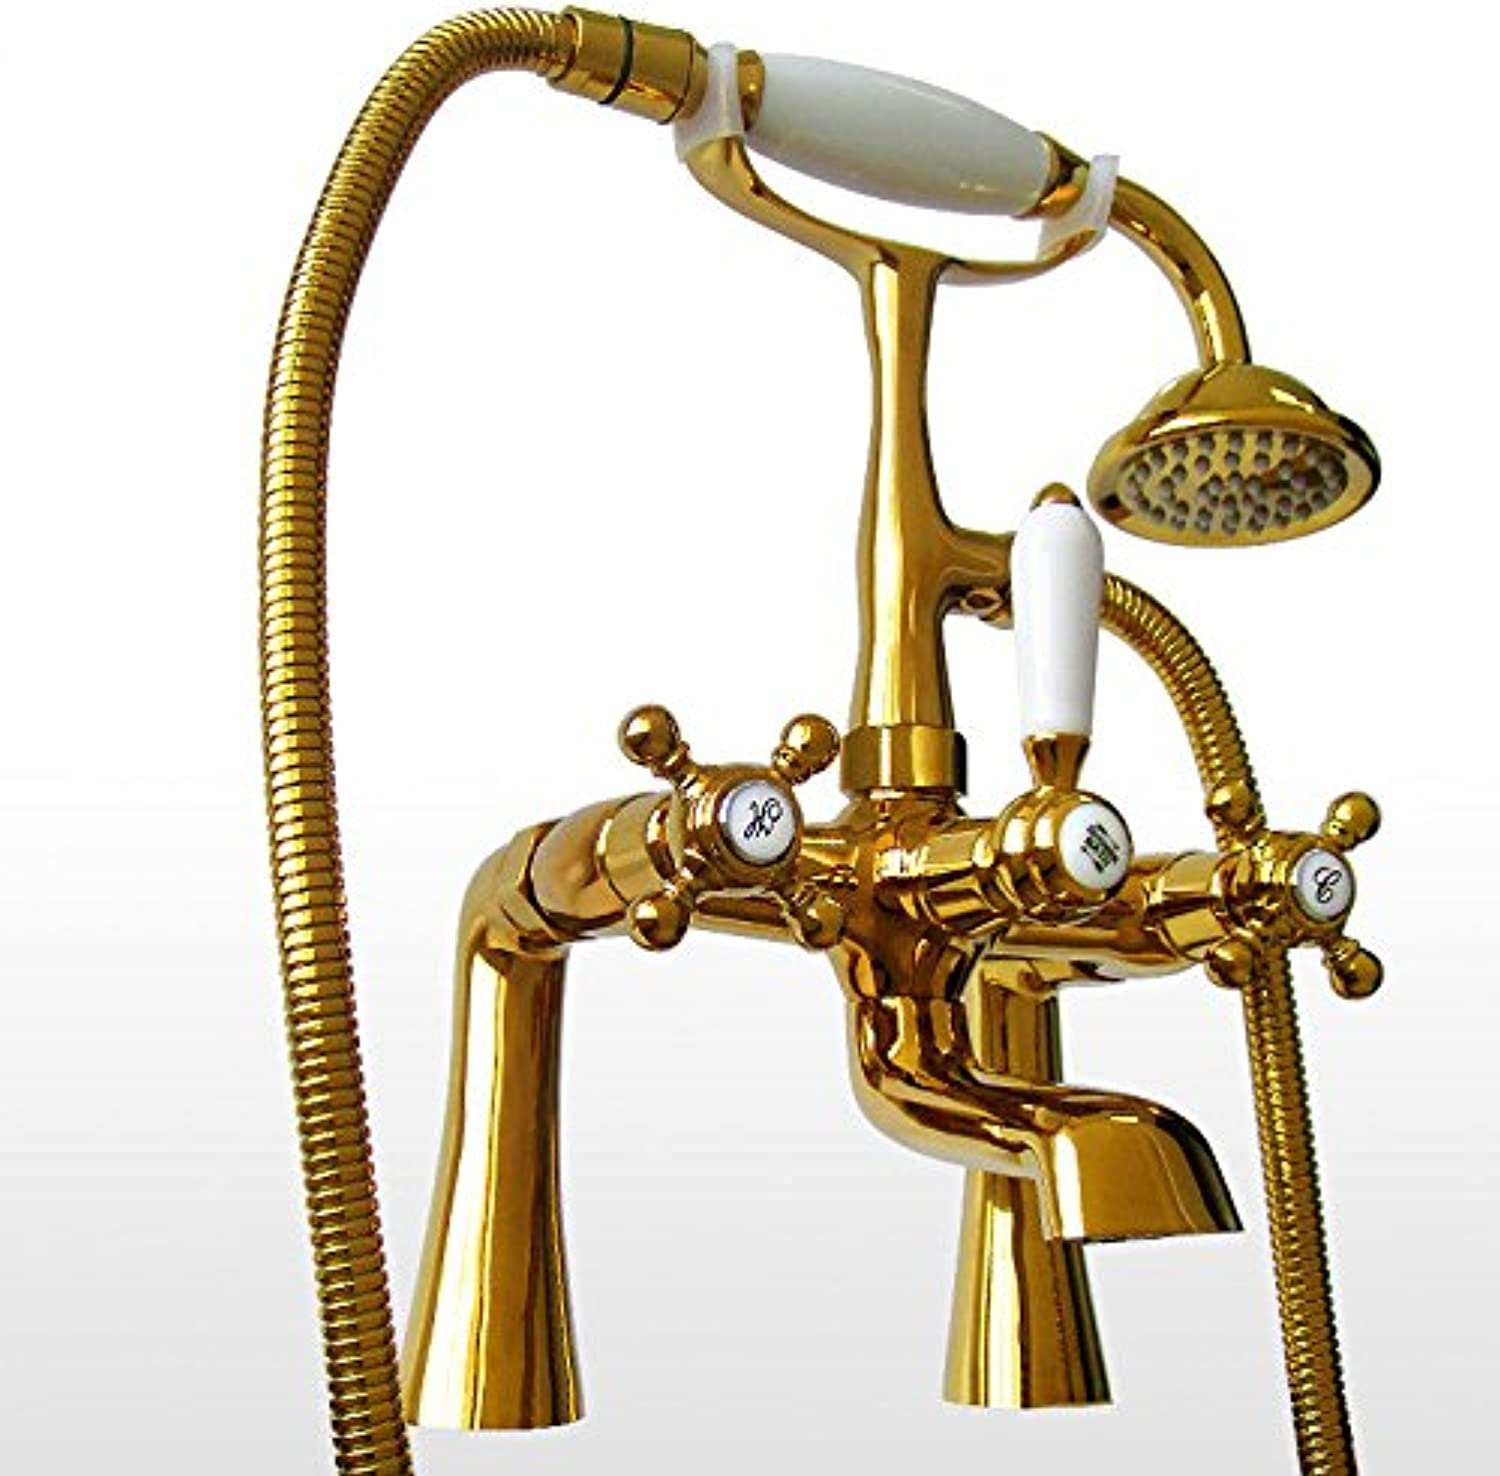 Hlluya Professional Sink Mixer Tap Kitchen Faucet Bath shower, hot and cold bath Mixer Taps sit-in cylinder is full of antique copper telephone shower shower, gold